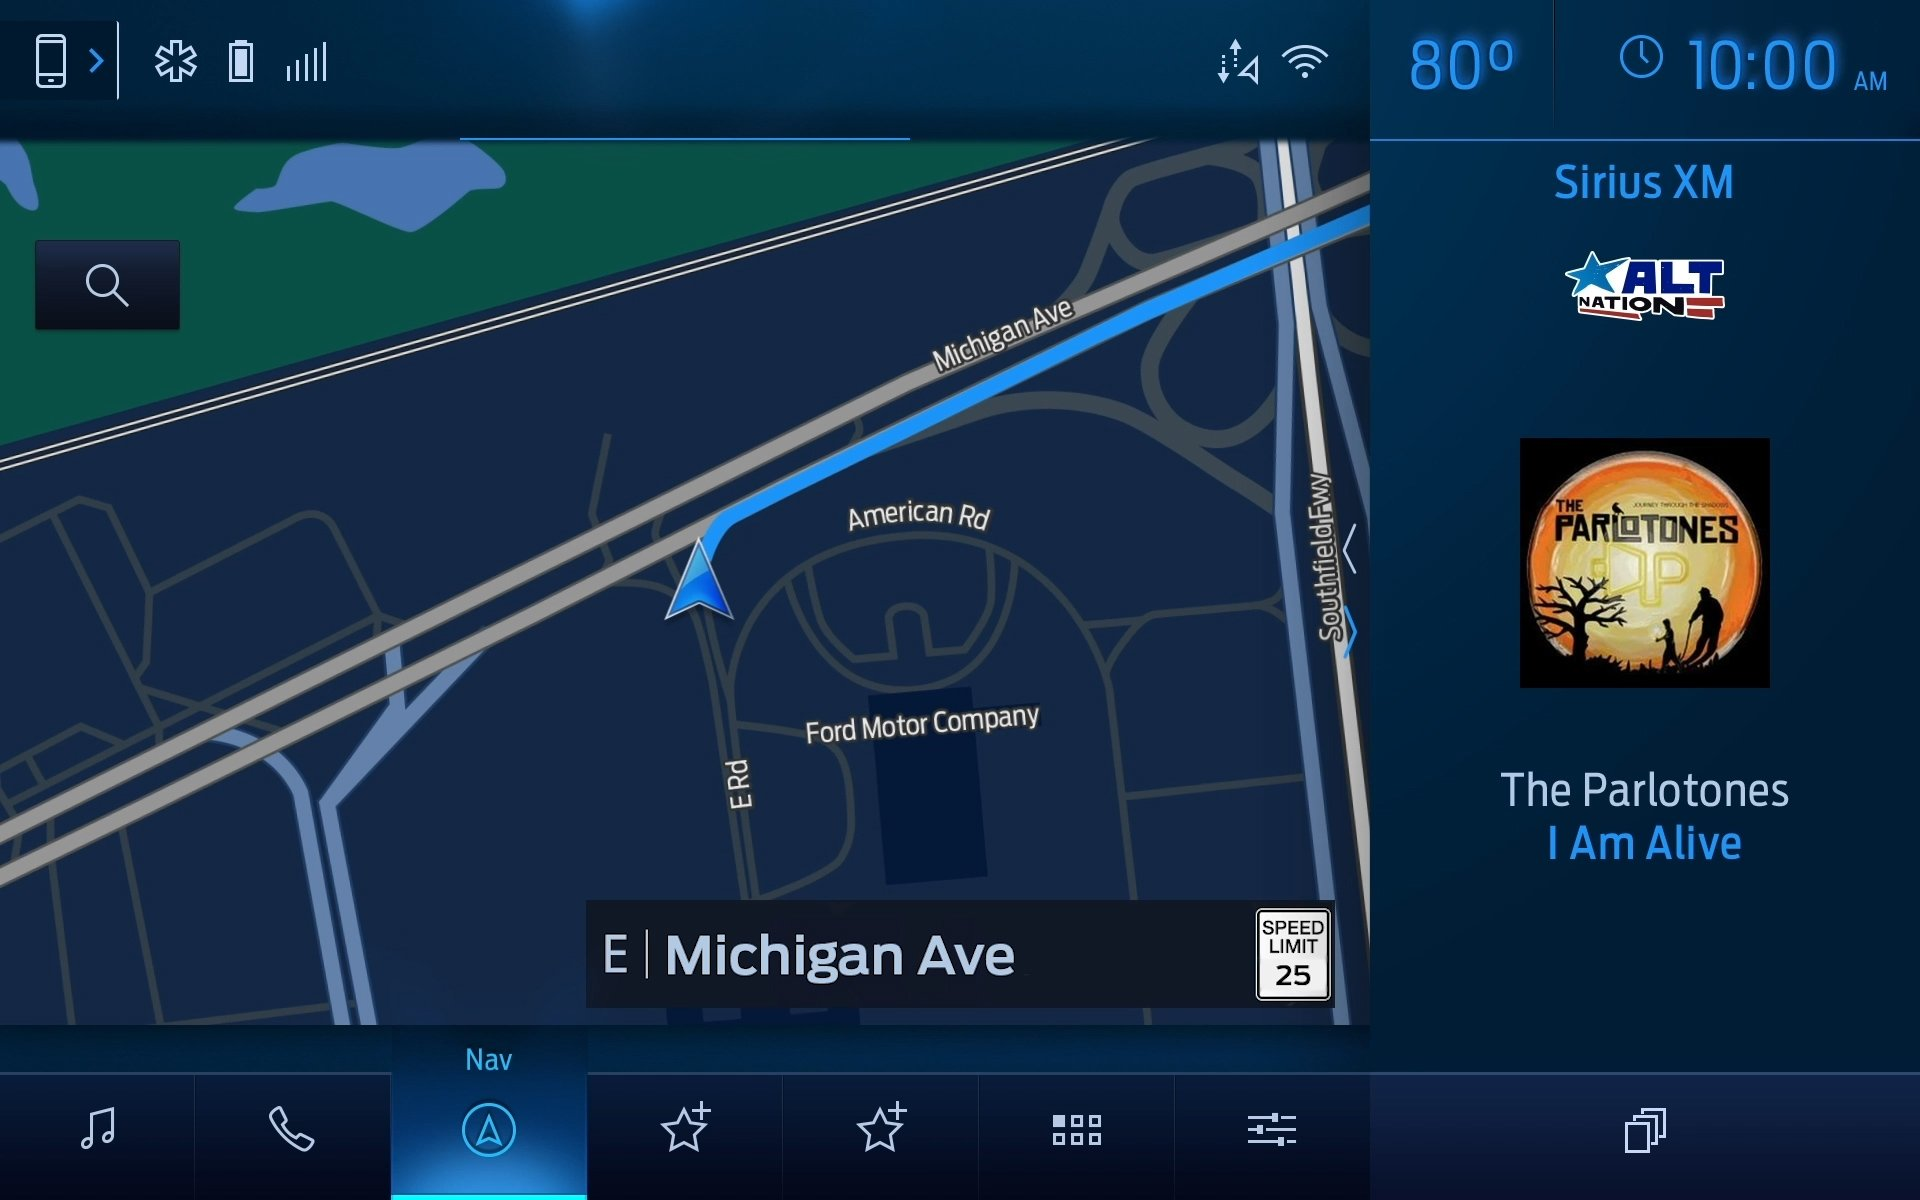 Ford's Next-Gen Sync Doubles Compute Power